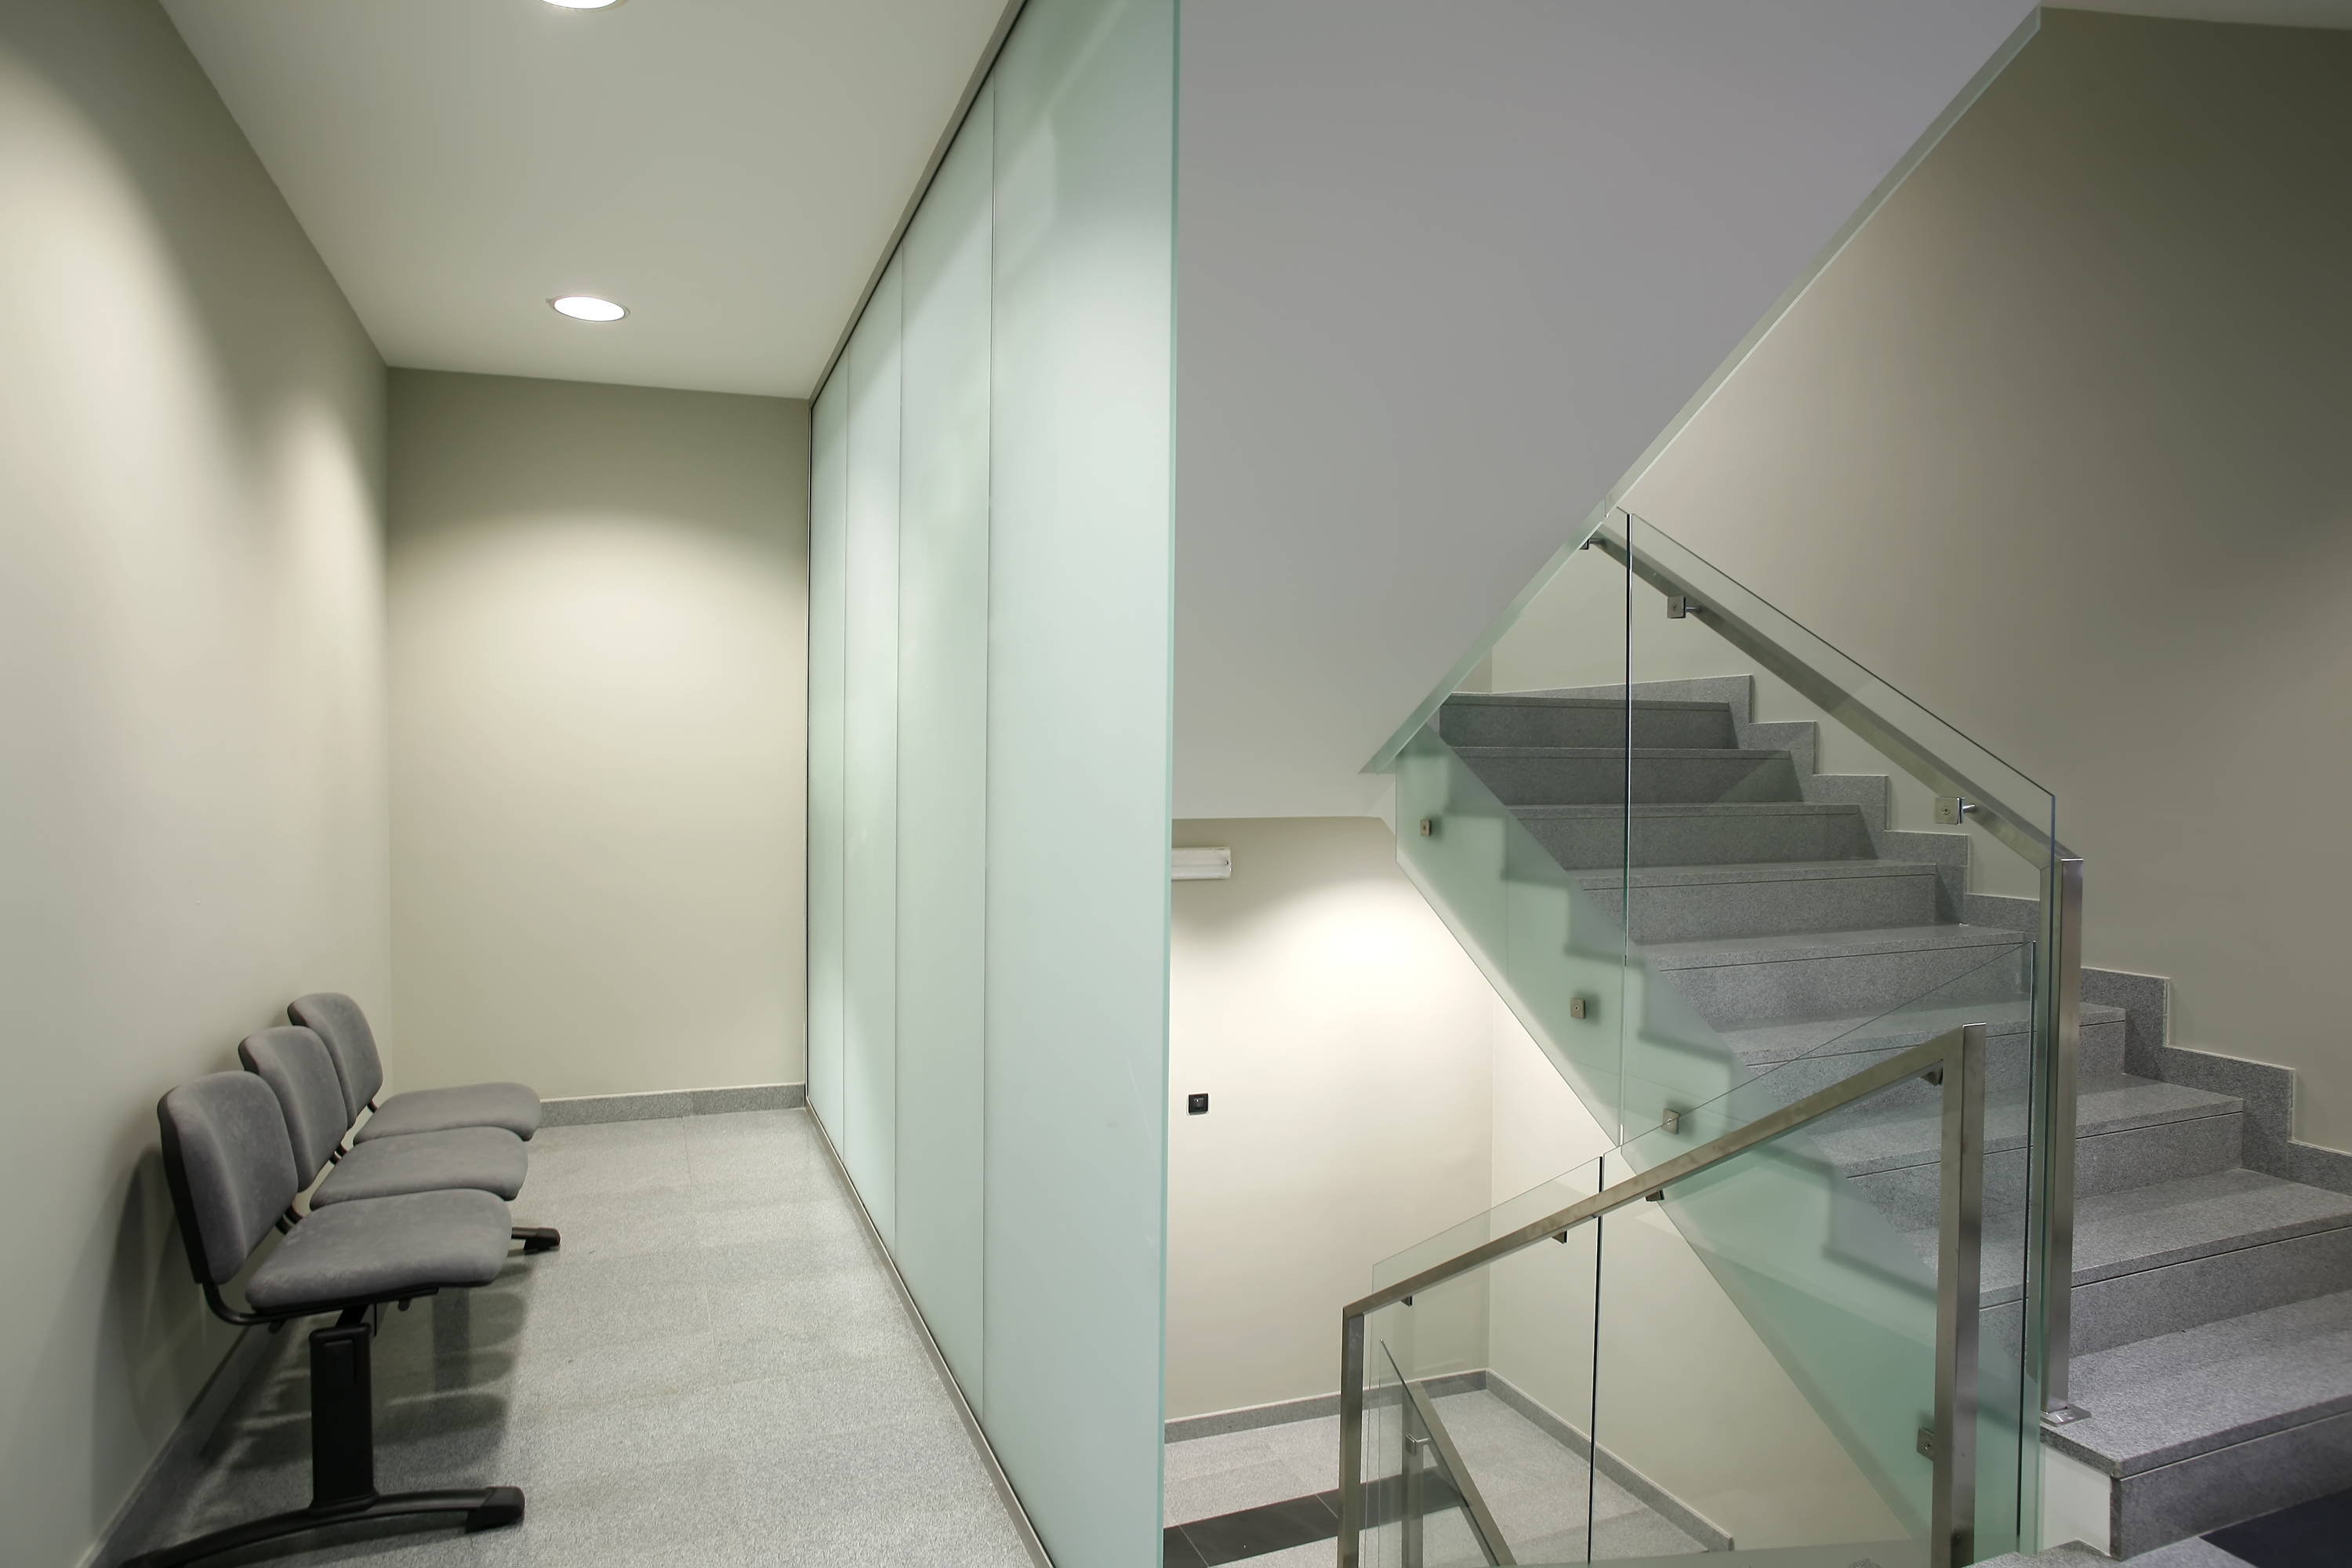 Tinted glass handrails with metal railing